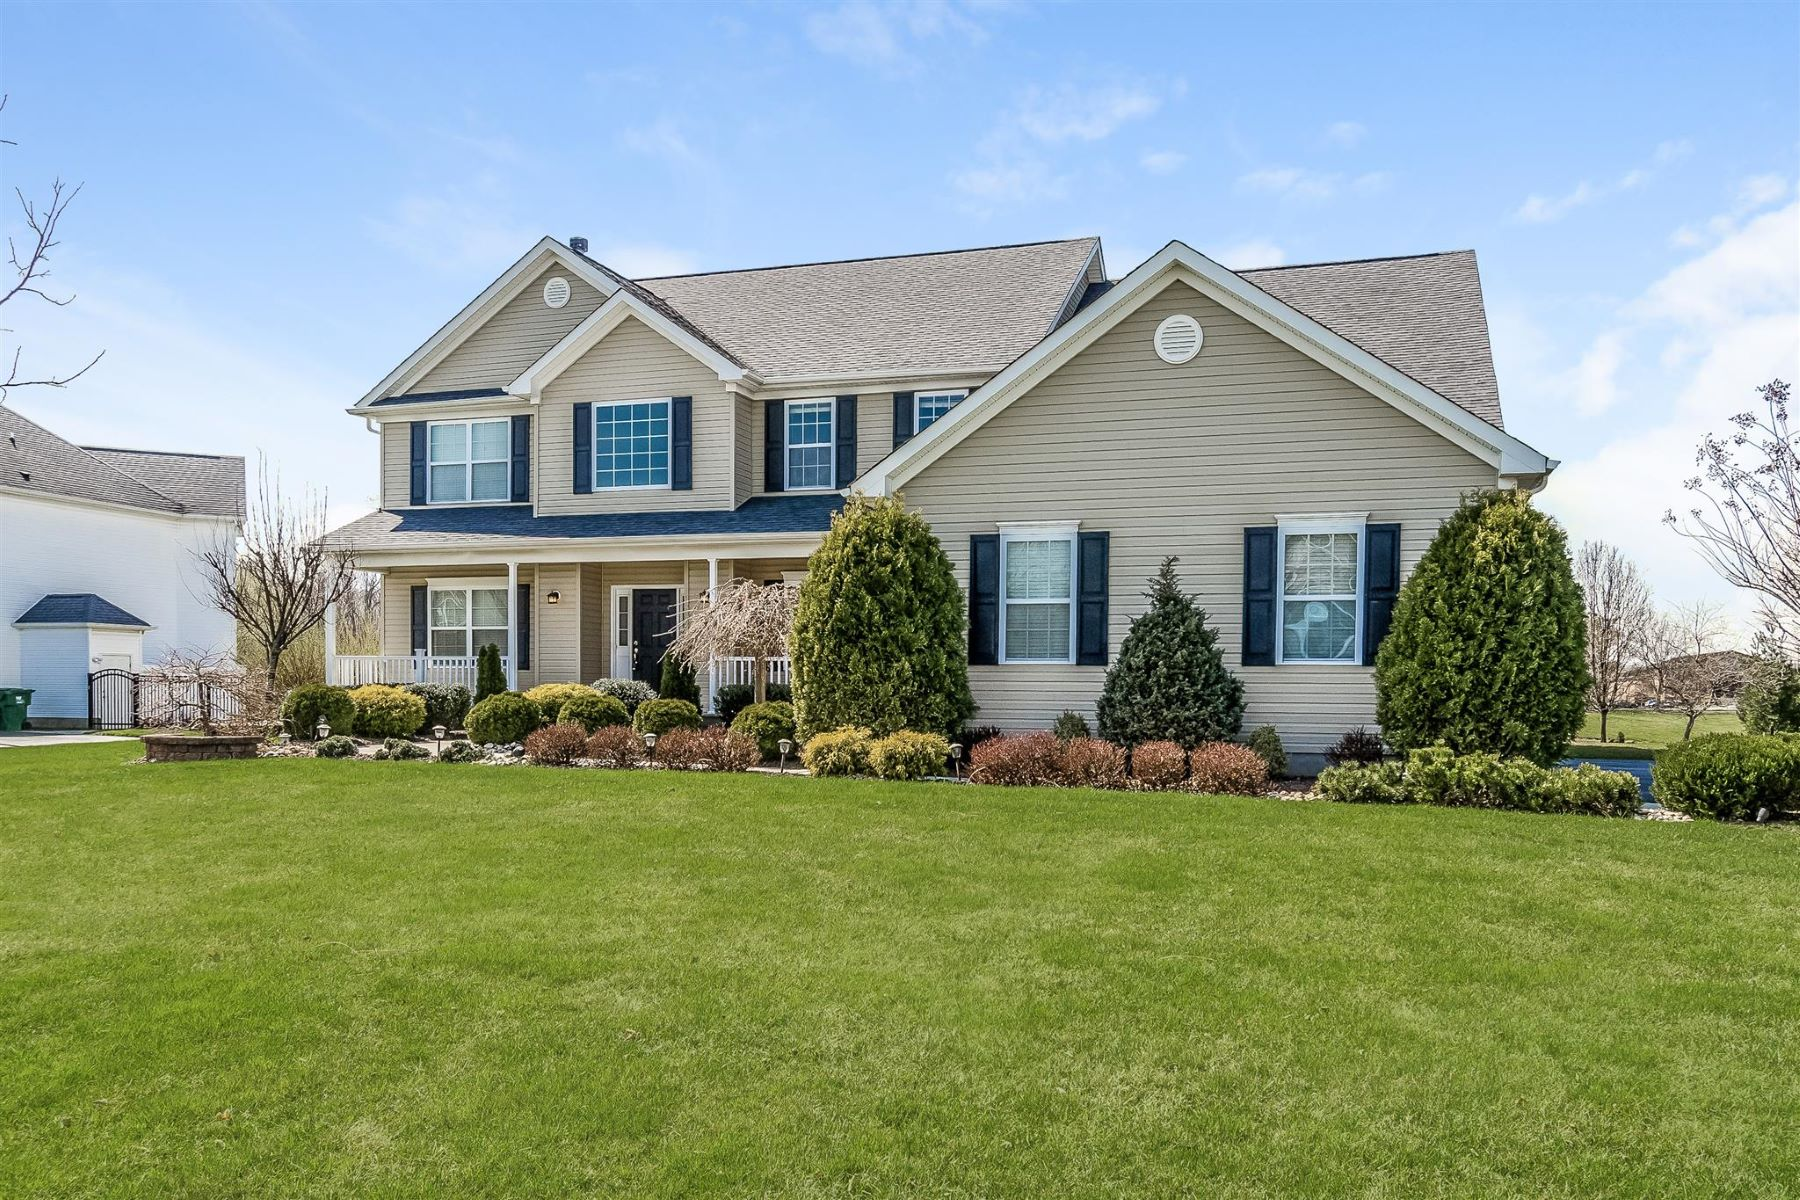 Single Family Homes for Sale at Spacious Expanded Driftwood 21 Skeba Drive Monroe Township, New Jersey 08831 United States